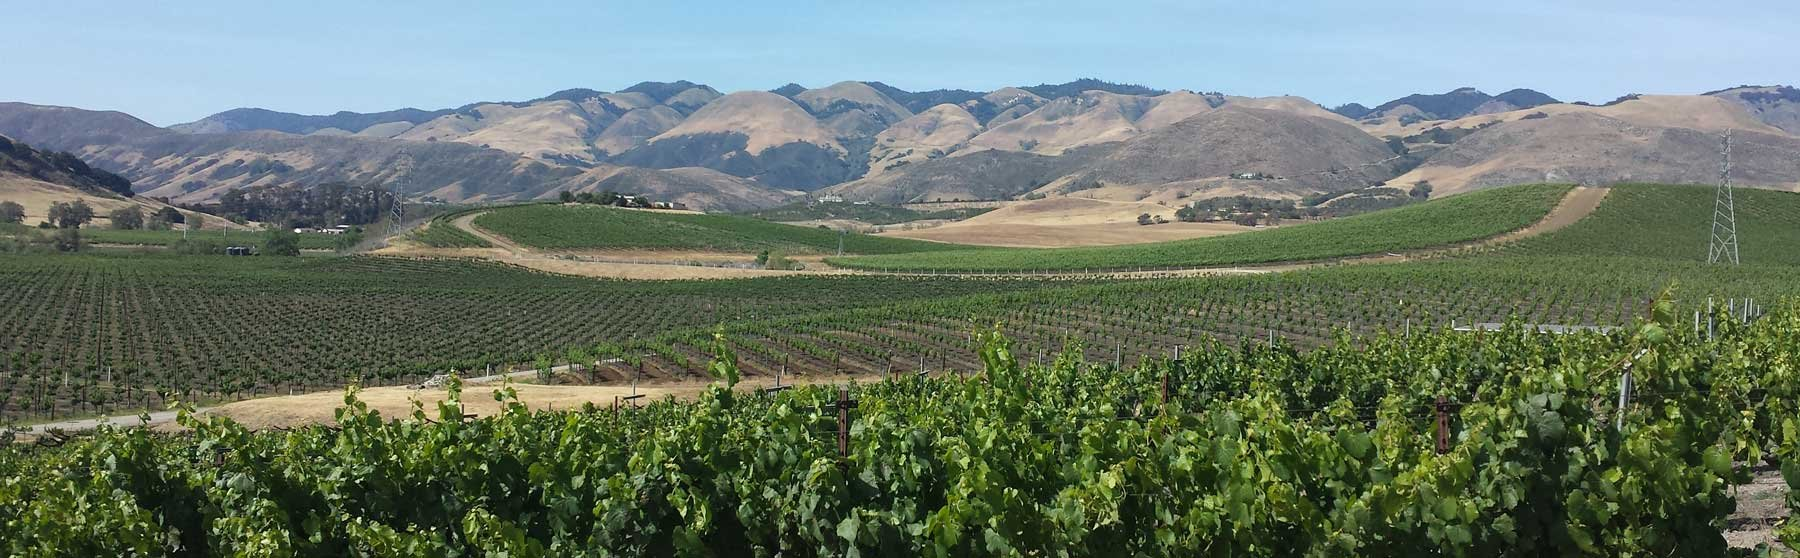 Exciting Places to Visit in California